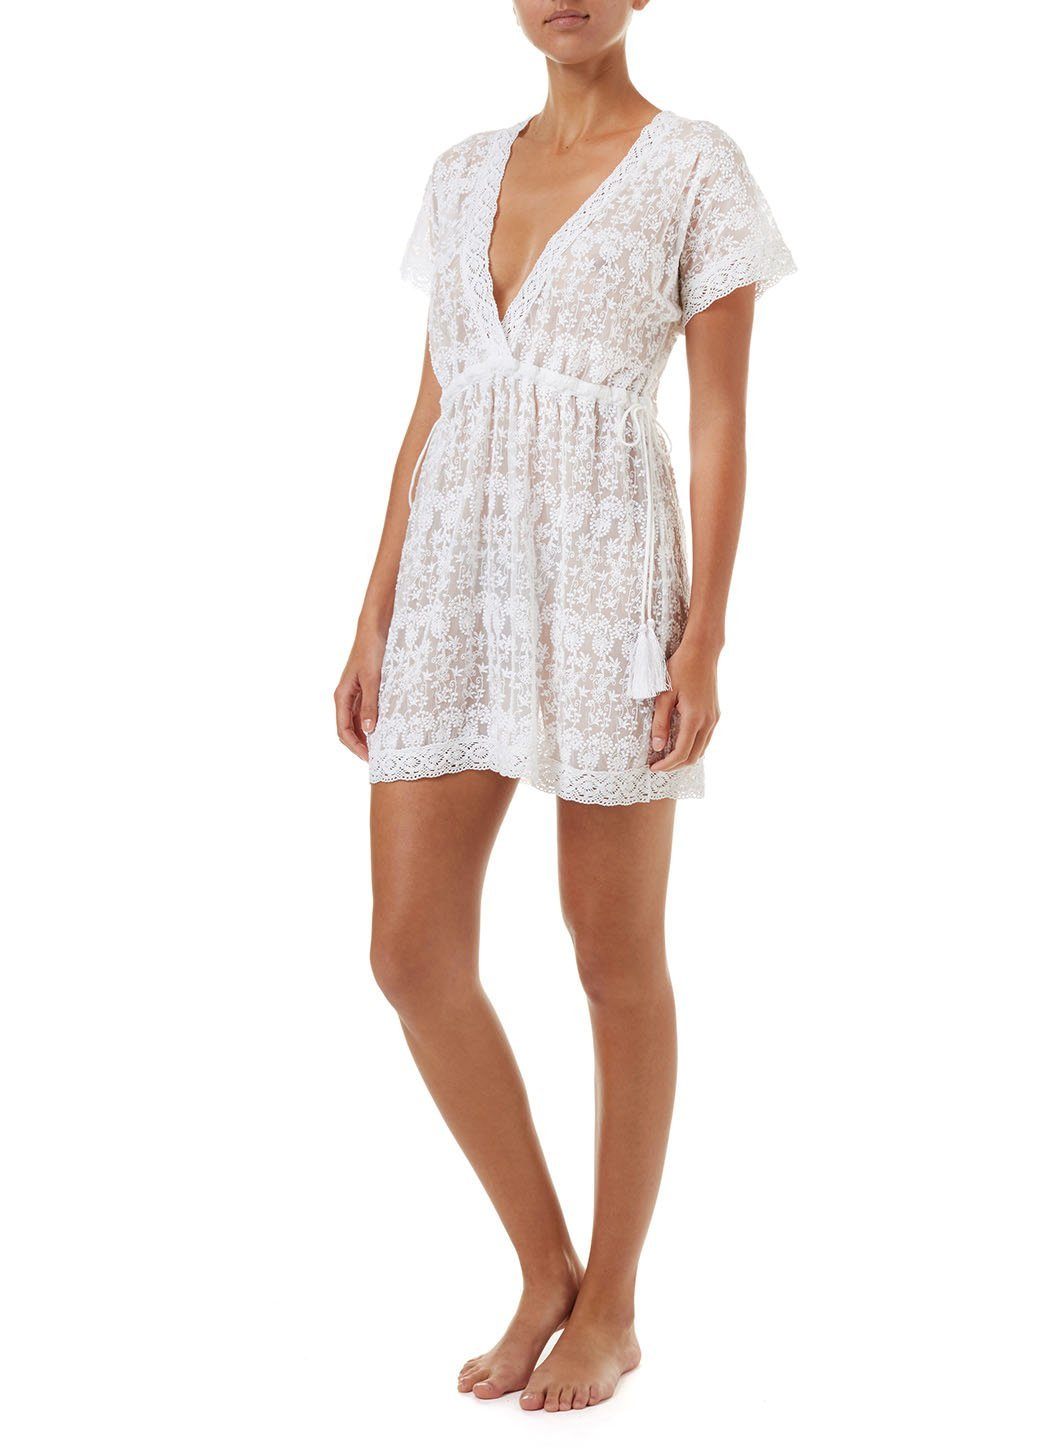 adelina white embroidered short tieside beach dress 2019 F